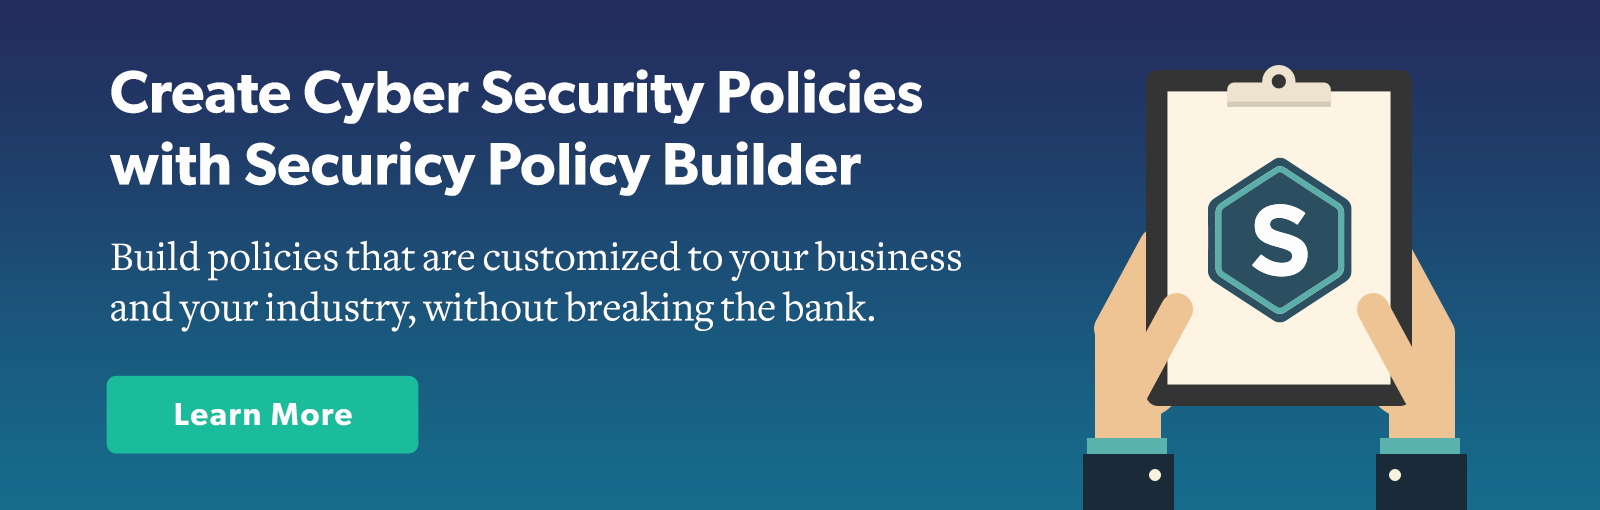 Create your own custom policy set with Securicy Policy Builder!